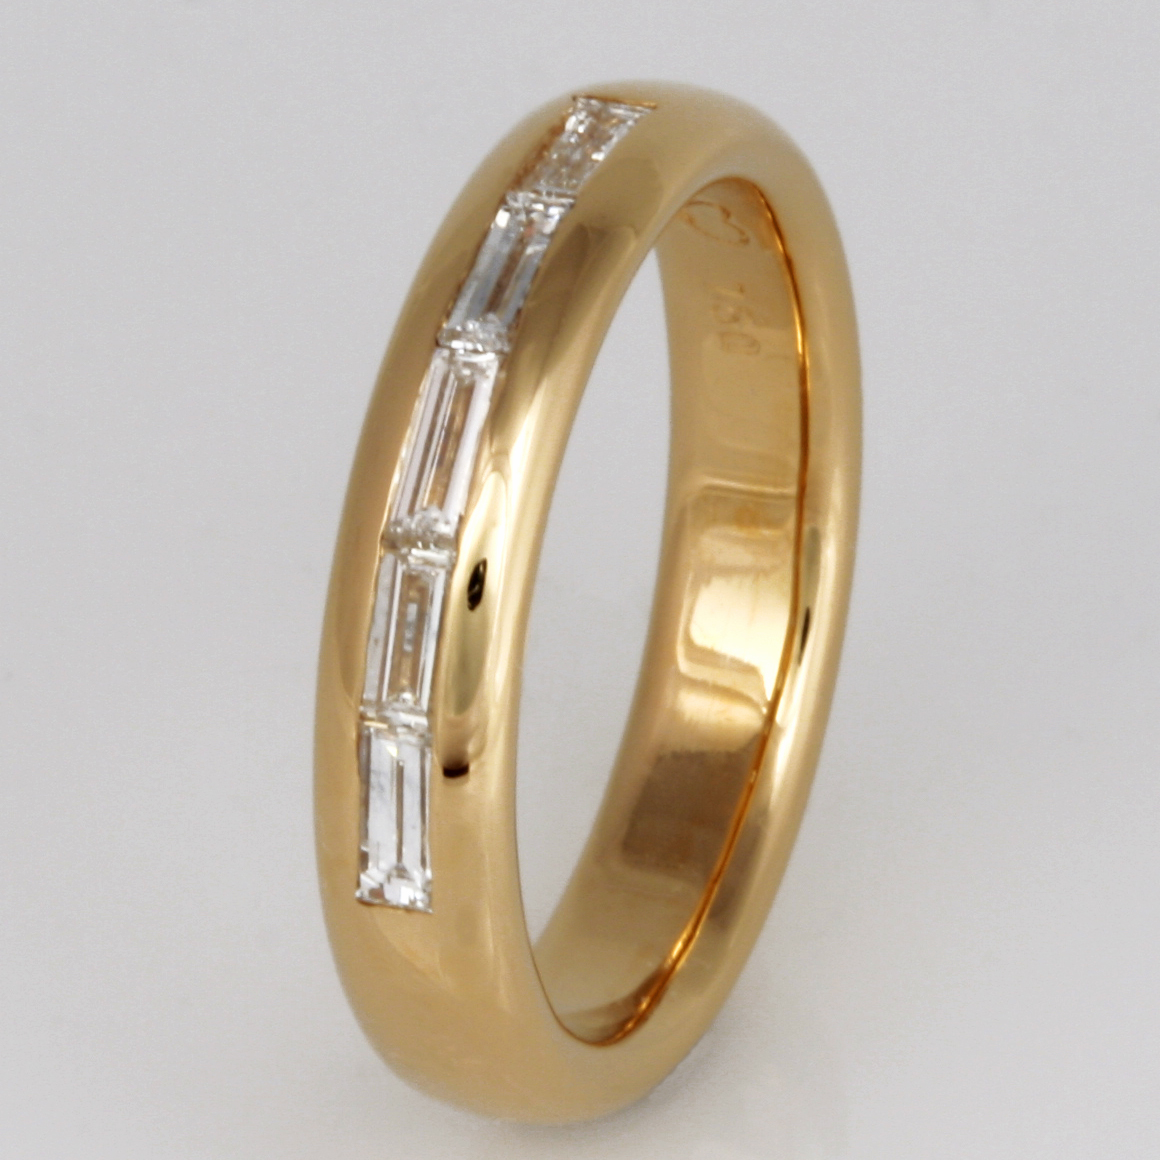 Handmade ladies 18ct yellow gold baguette diamond set wedding ring